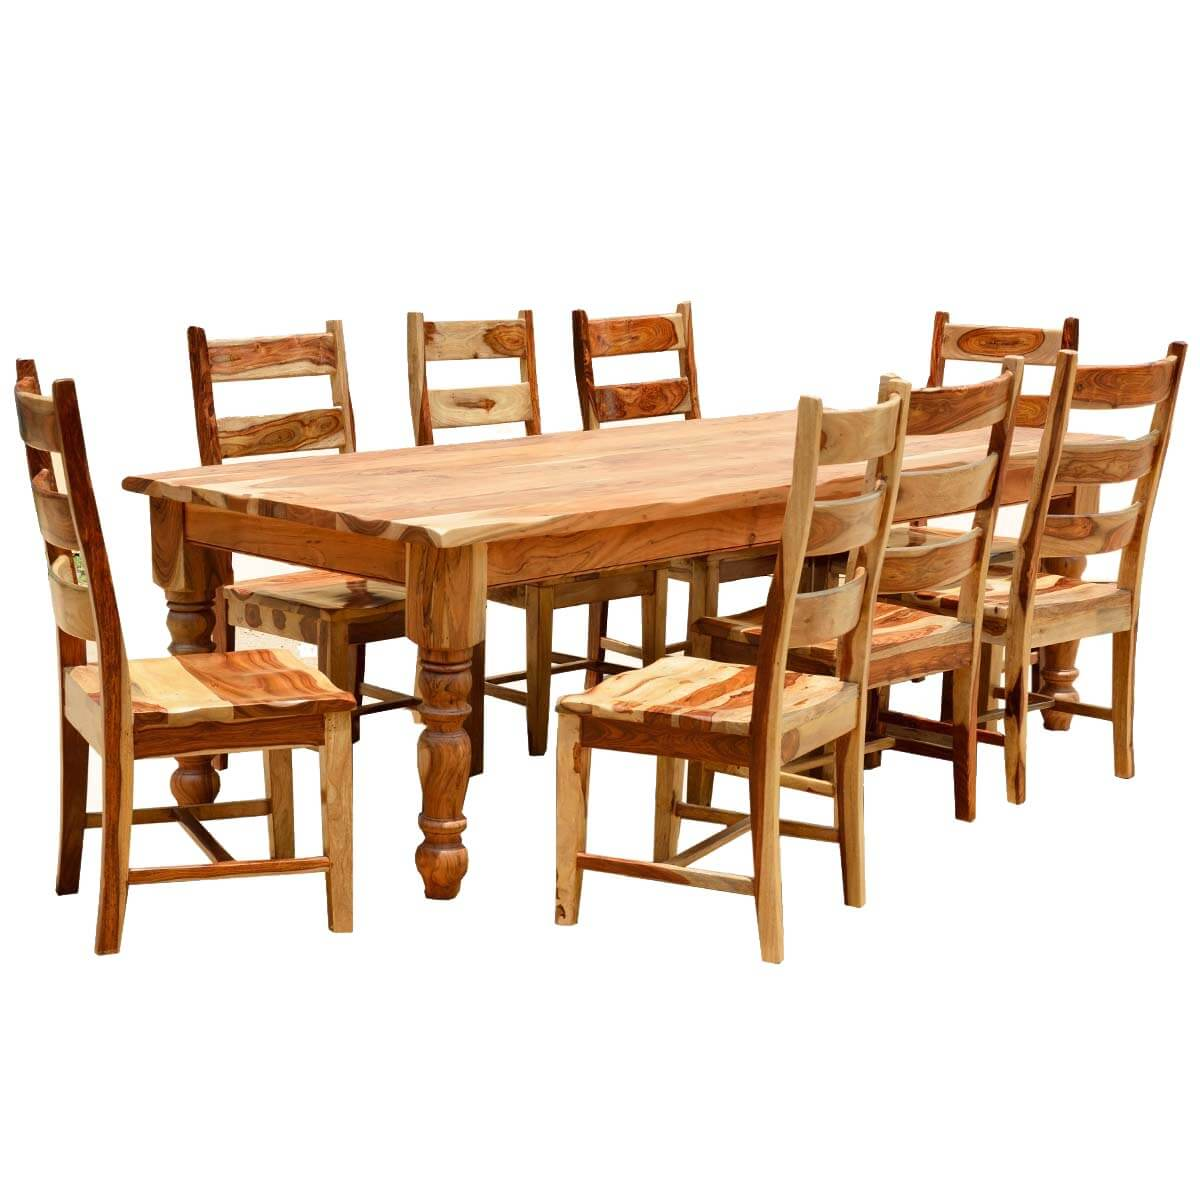 Rustic Solid Wood Large Square Dining Table Chair Set: Rustic Solid Wood Farmhouse Dining Room Table Chair Set